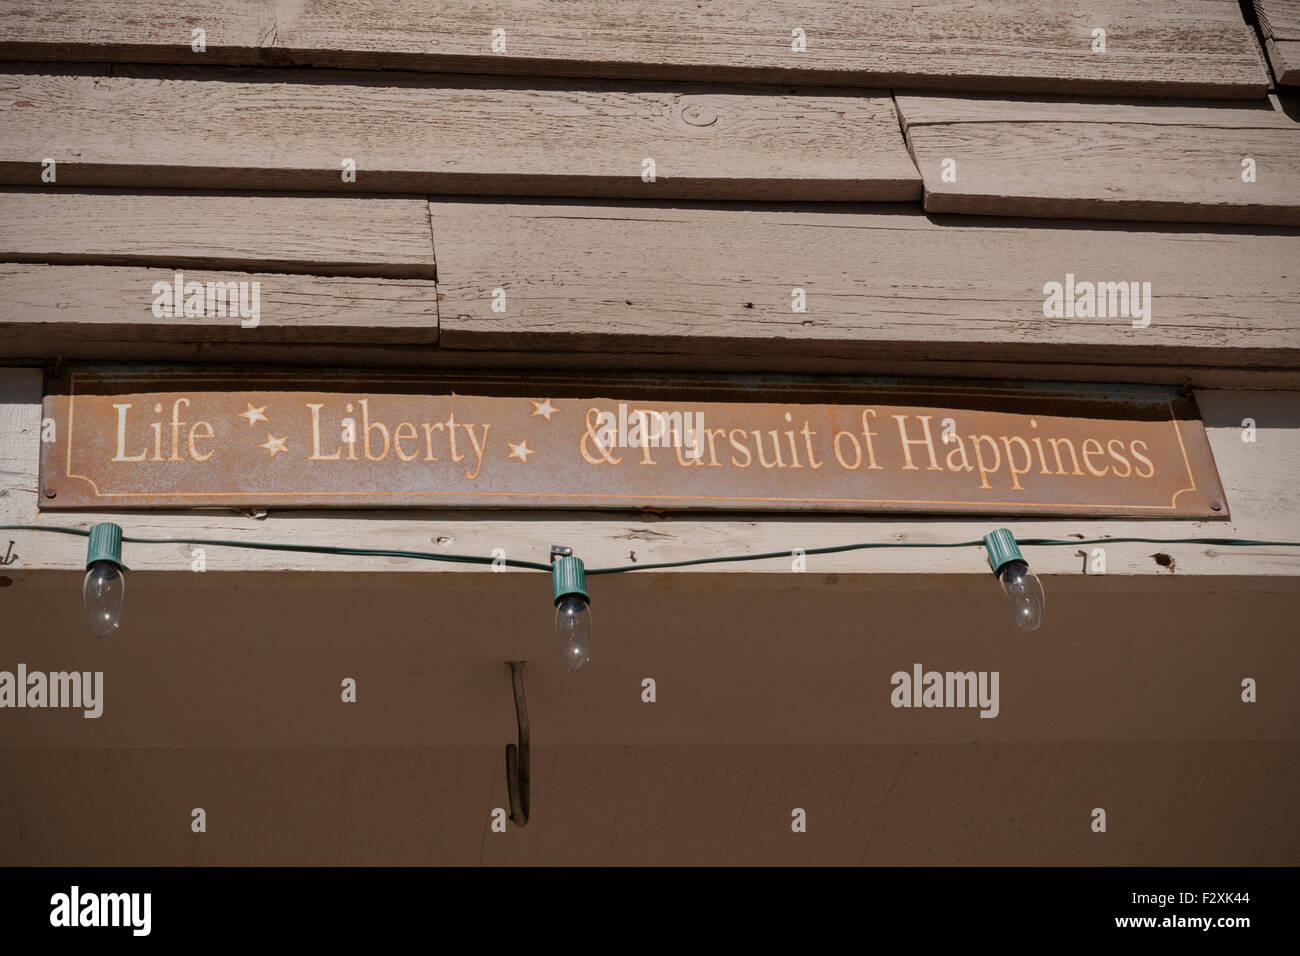 Rusty old sign reading Life Liberty & Pursuit of Happiness found in the United States of America - Stock Image